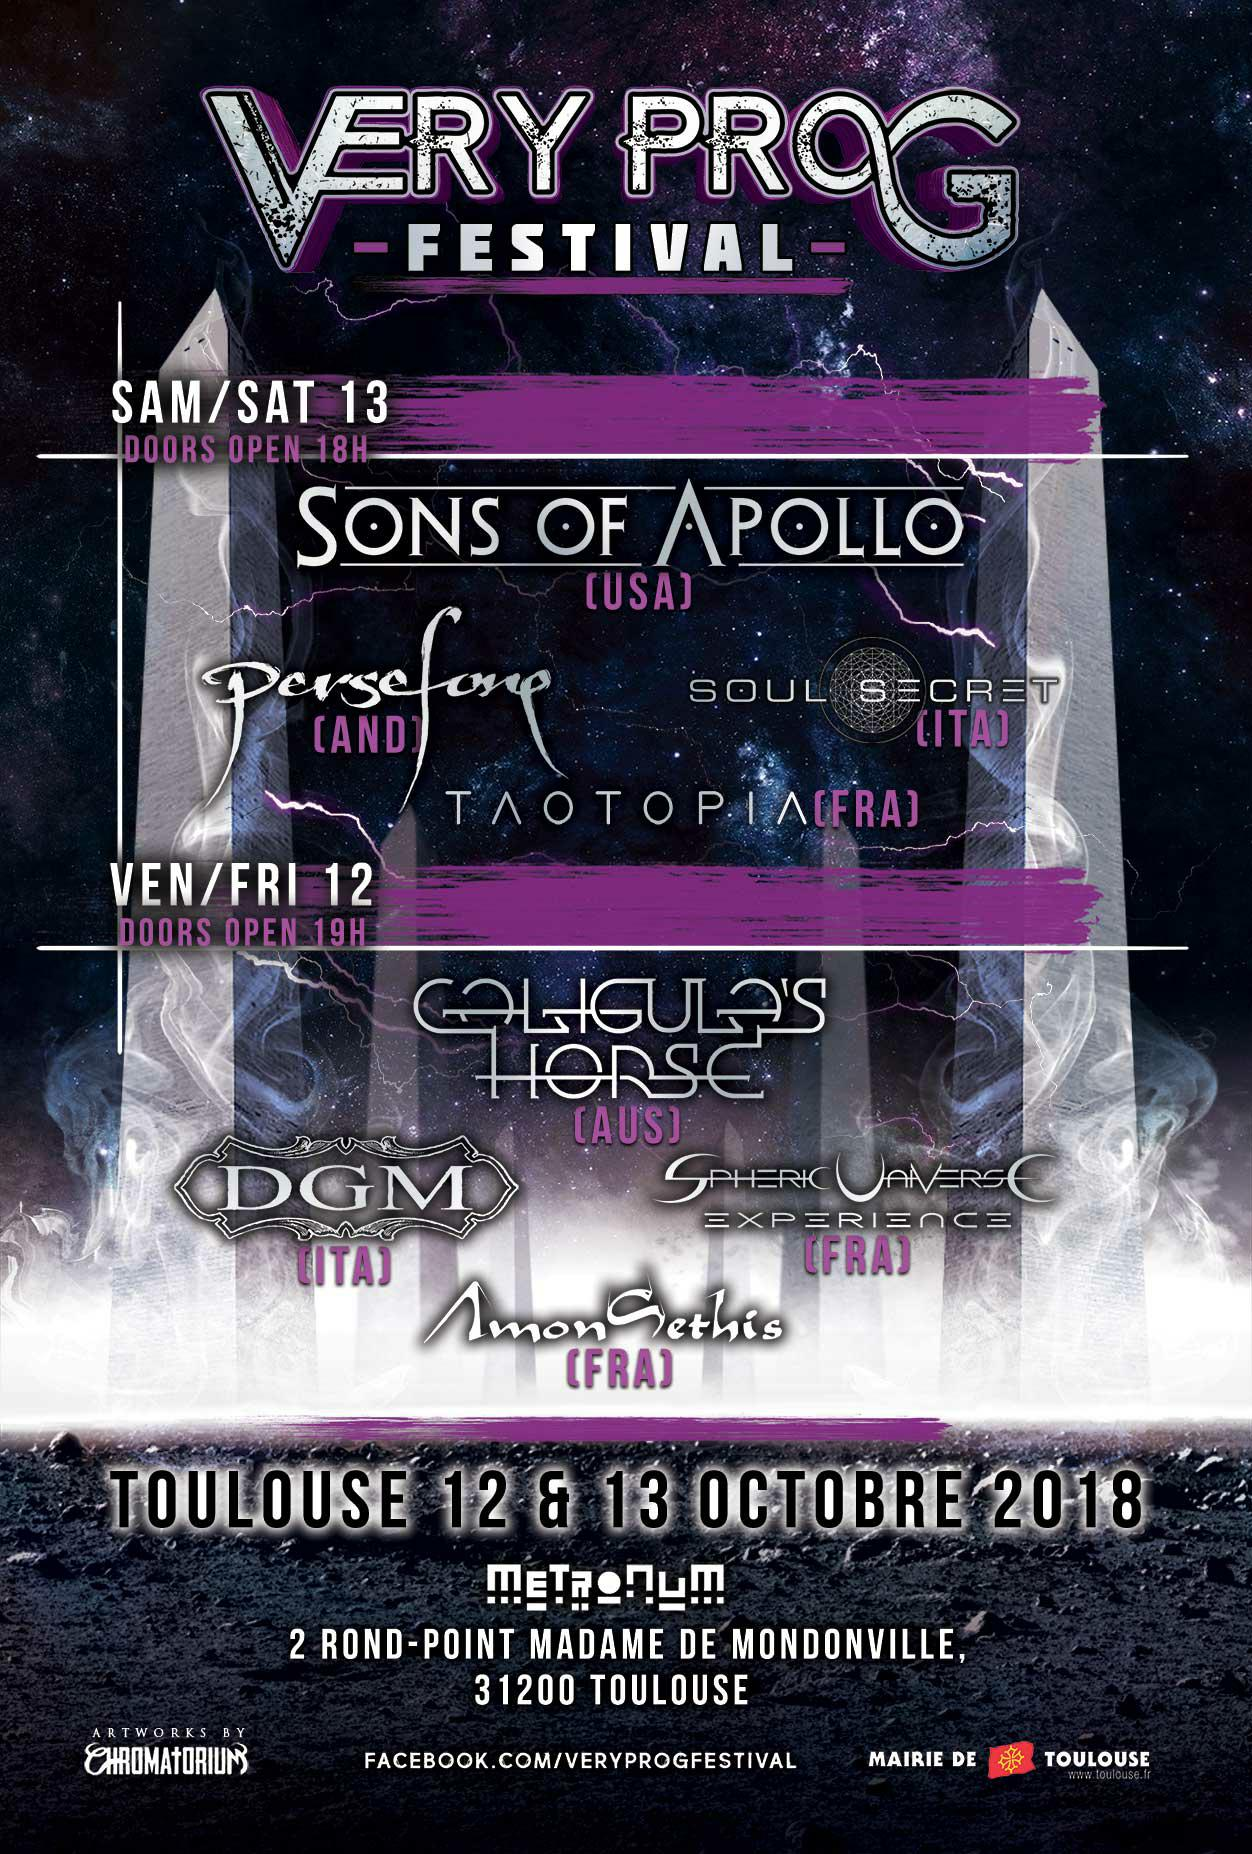 Very Prog Festival Affiche